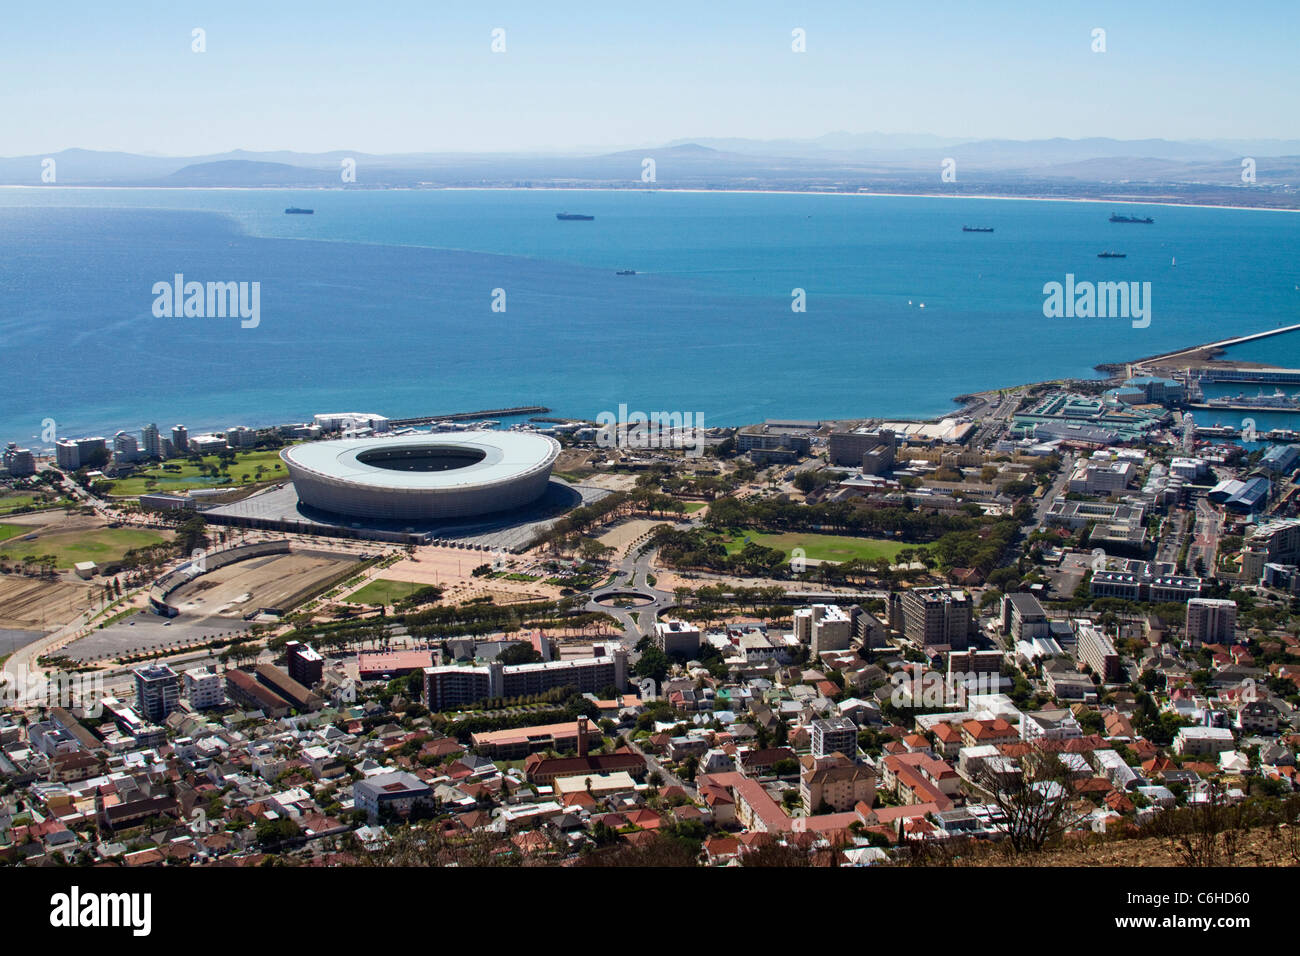 Greenpoint stadium and the view across towards Blouberg strand - Stock Image